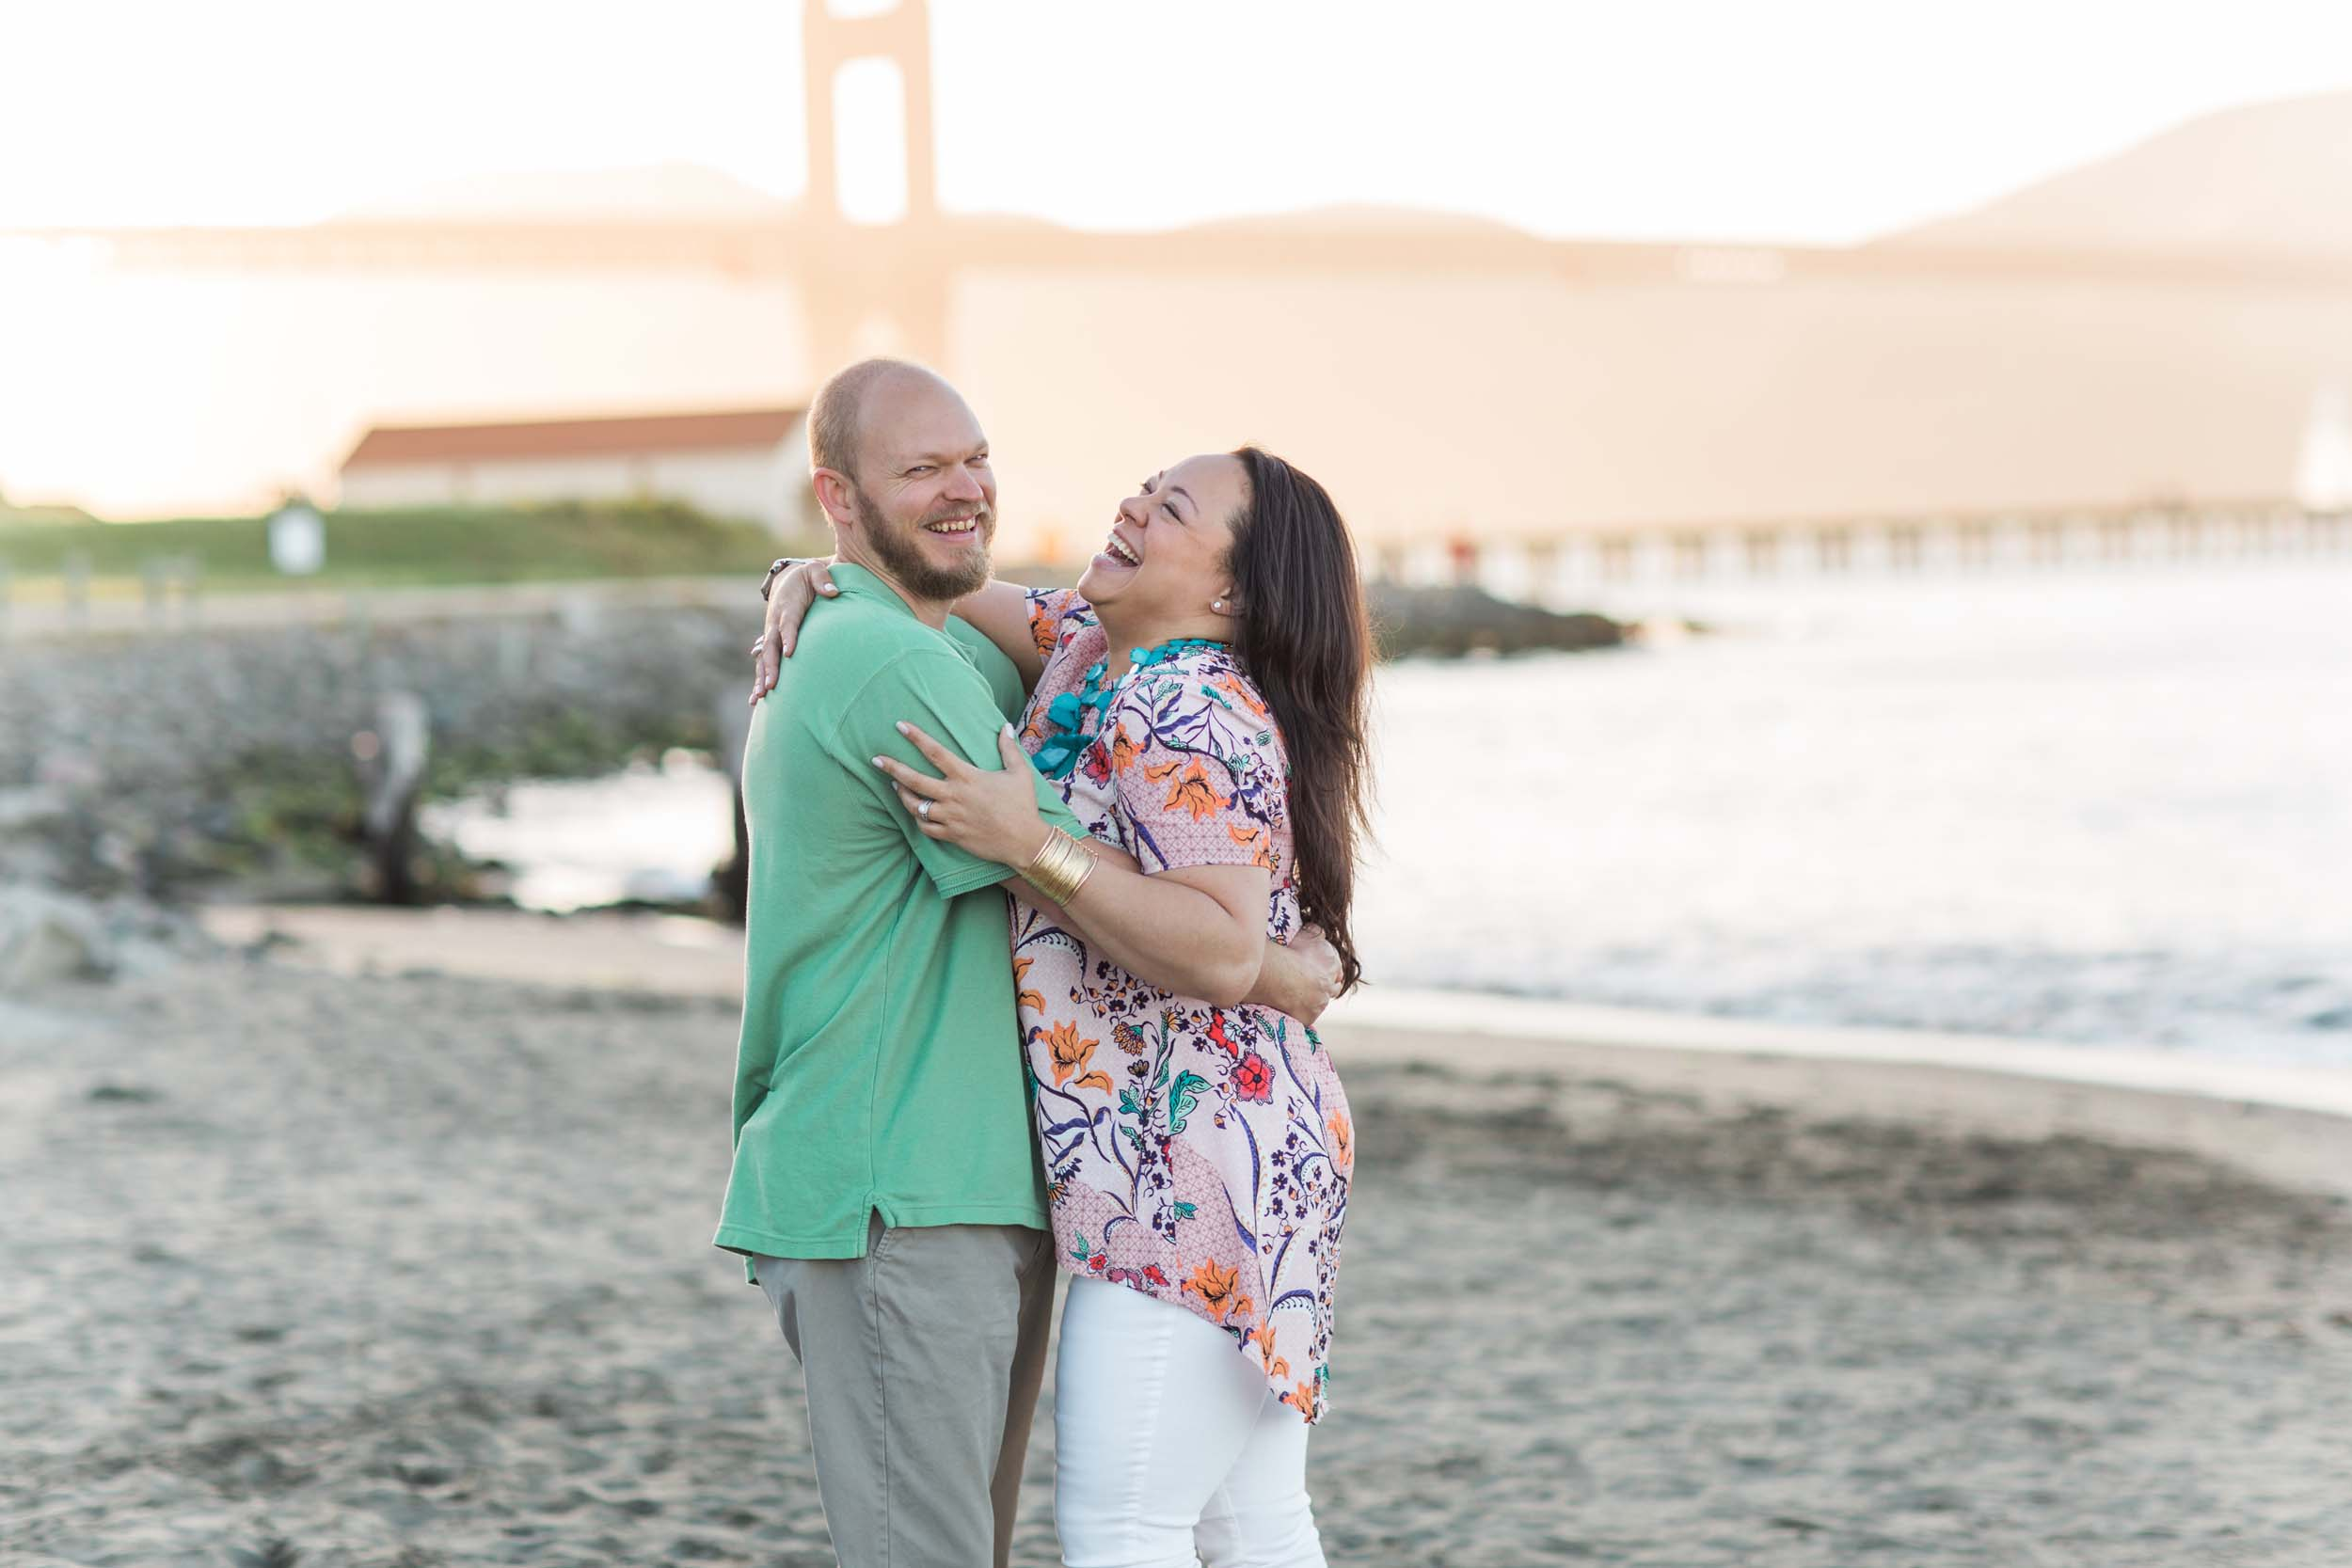 A couple embraces on a beach in San Francisco in front of the Golden Gate Bridge.